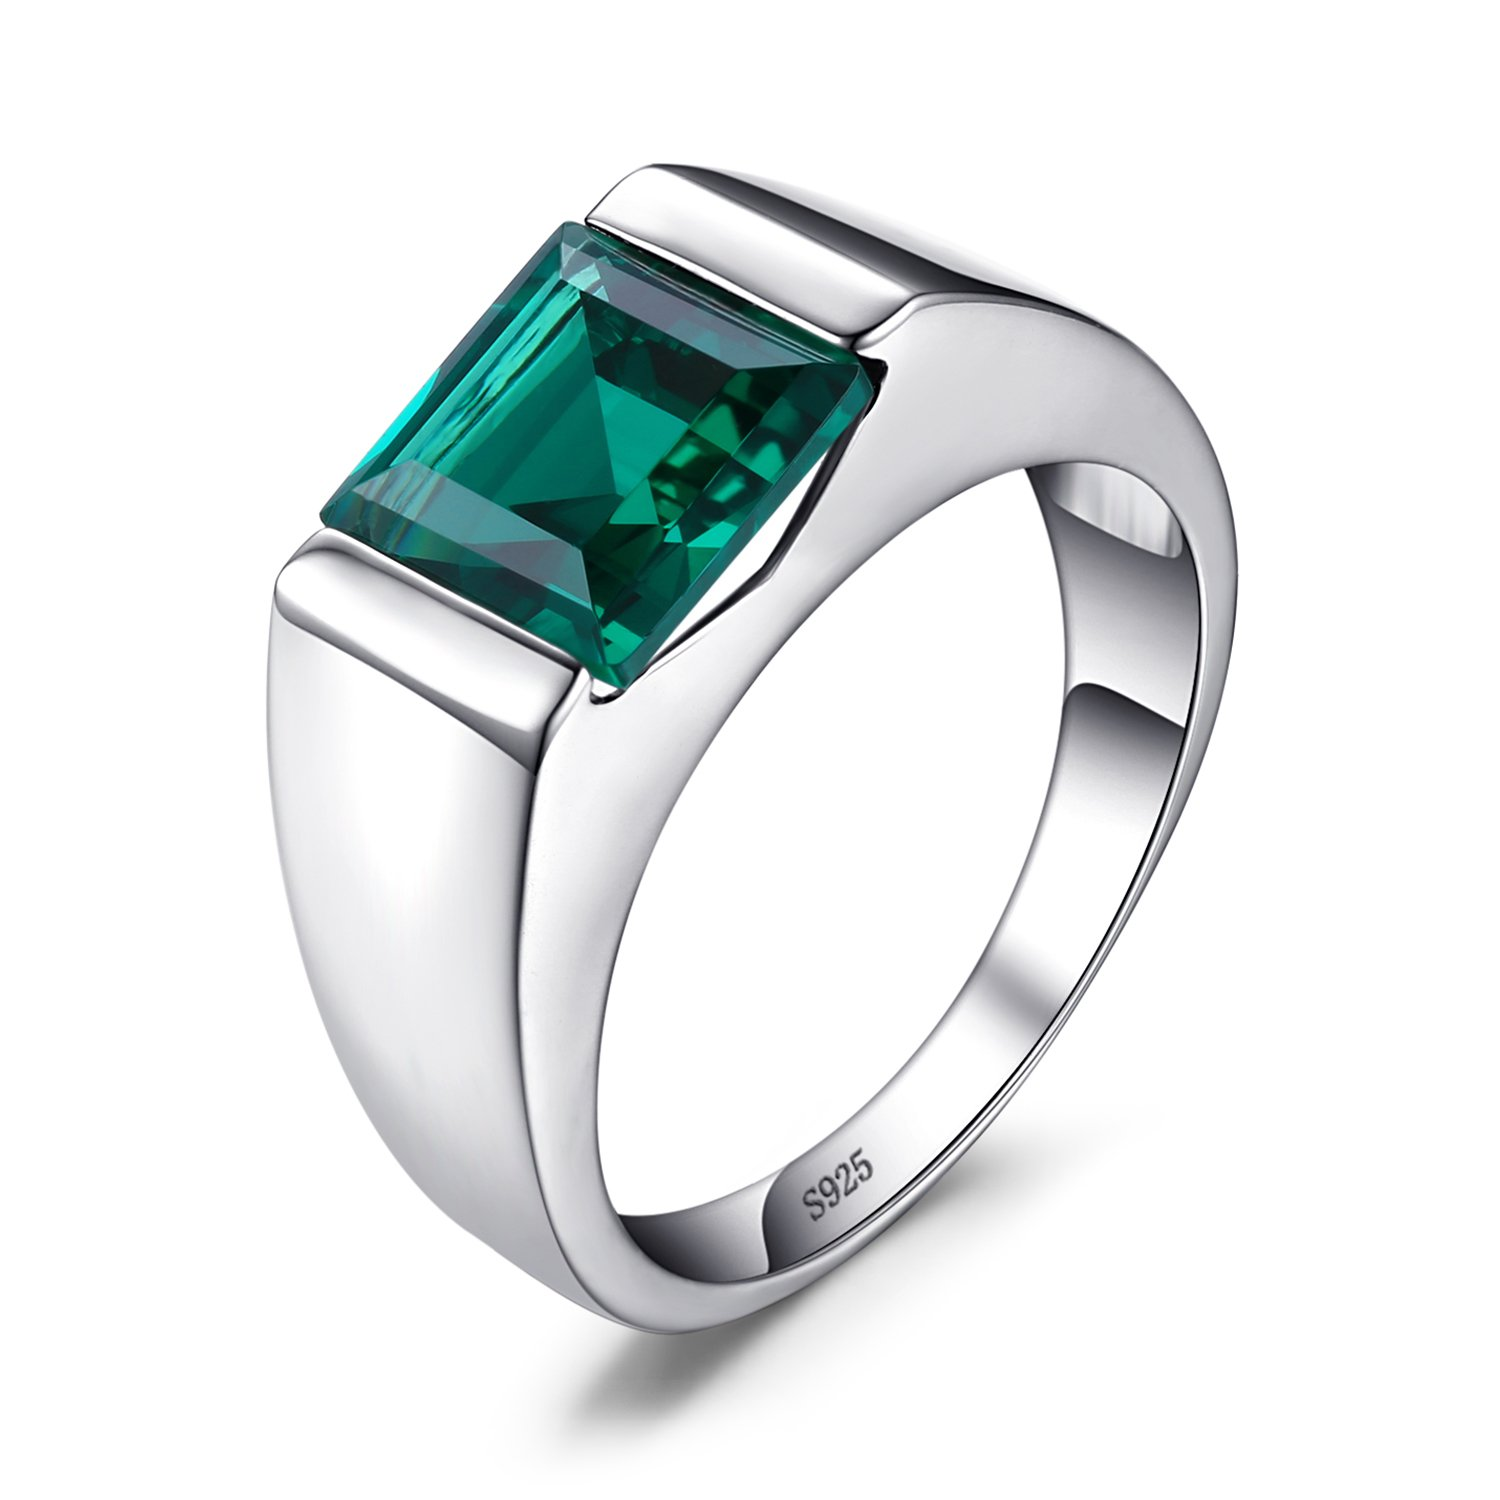 Jewelrypalace Men's Square 2.2ct Simulated Russian Nano Green Emerald Engagement Ring 925 Sterling Sliver Size 7